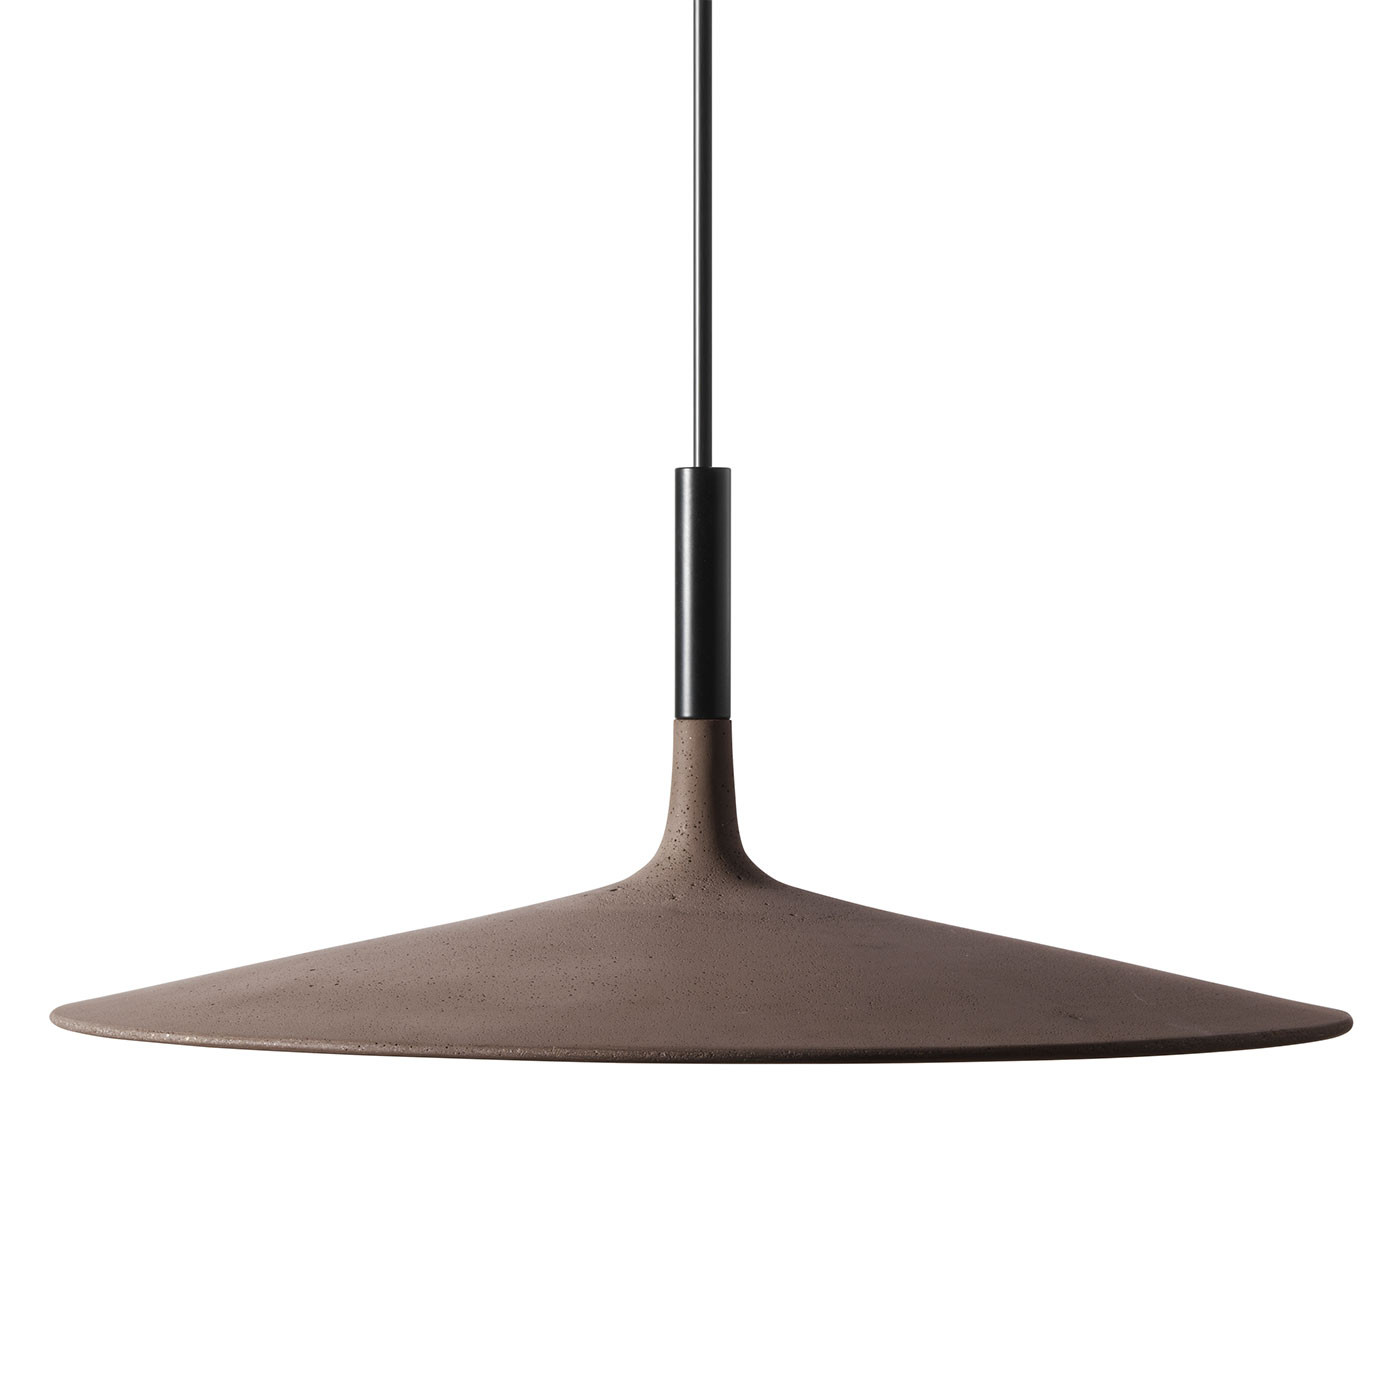 Foscarini Aplomb Large Sospensione LED dimmbar